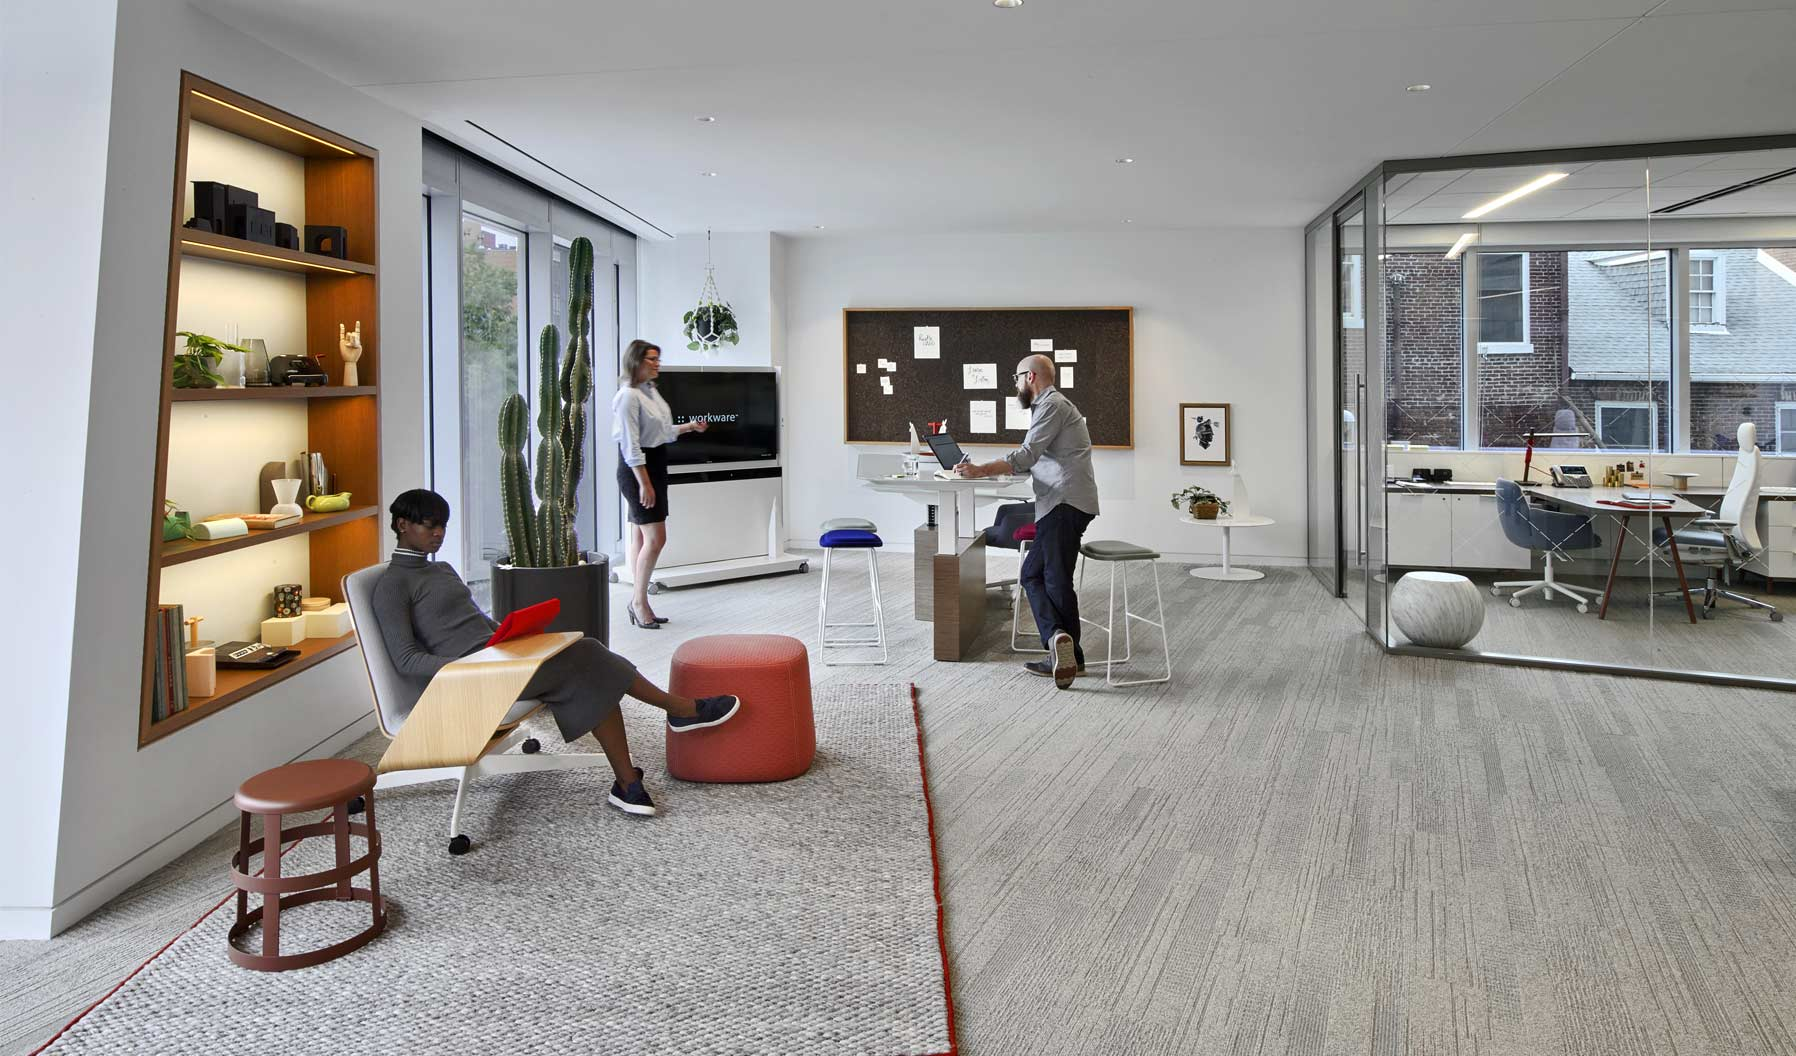 This Social Space demonstrates how a zone can be layered with various postures and become an effective collaboration tool for the entire office. Anchored at the end of the floor plate with both technology and tactile pin up space, and adjacent to both private offices and workstations, it's a spot where multiple people can efficiently come together to collaborate in the open office.